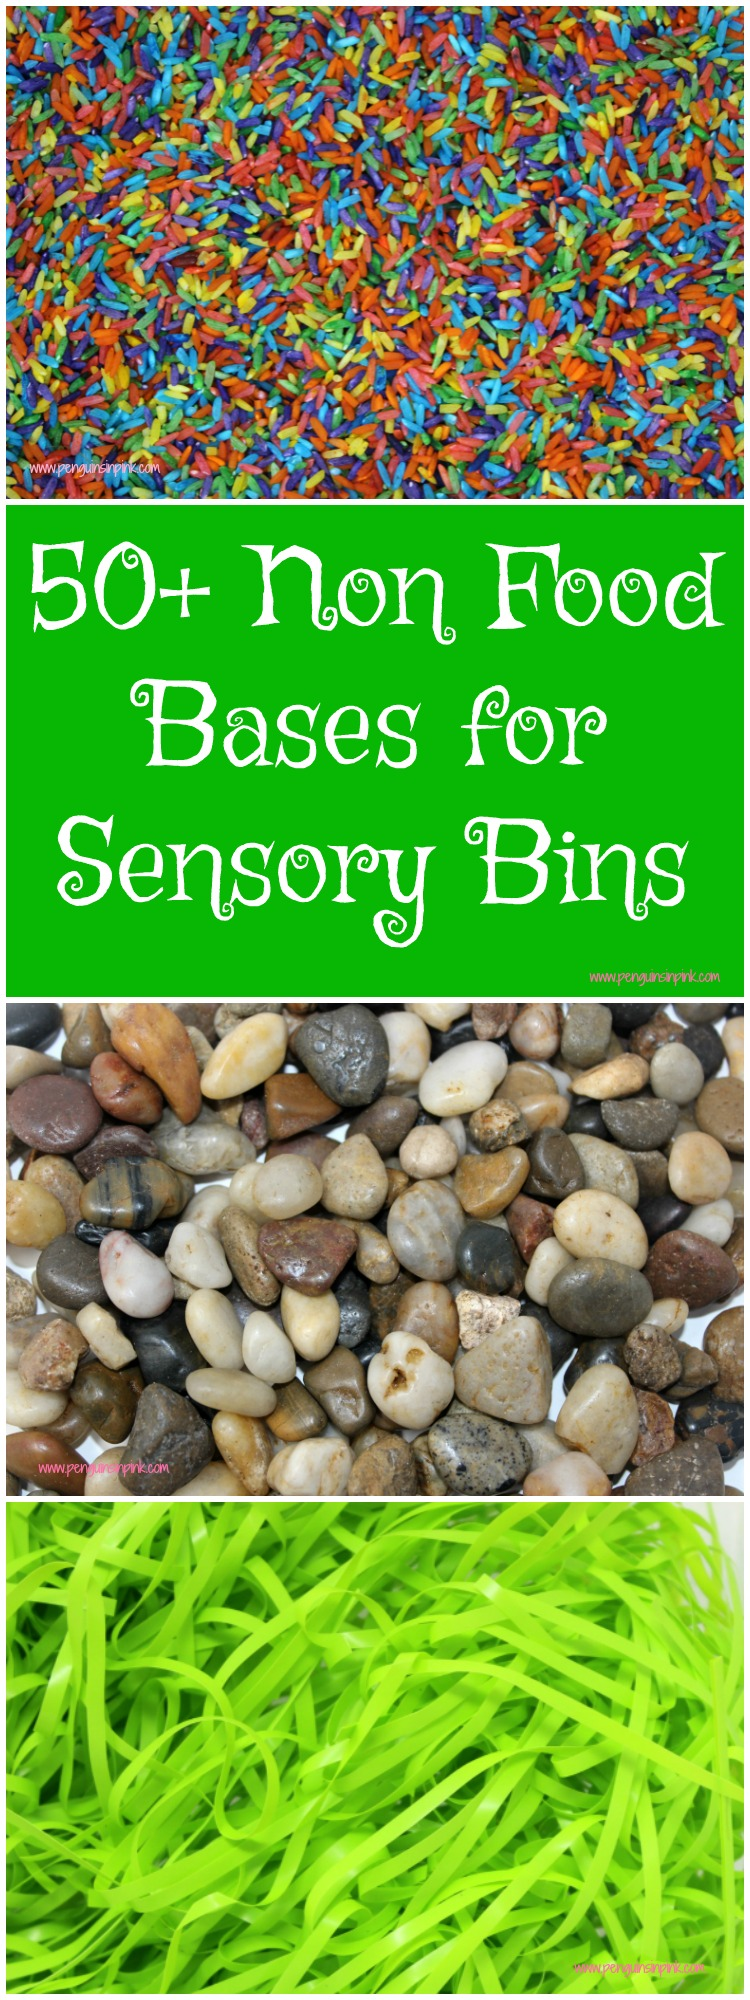 A huge list of 50+ non food bases for sensory bins. From rainbow rice to squishy play dough and gooey aloe to hard buttons this list has all the best bases for kids to touch and sometimes smell.